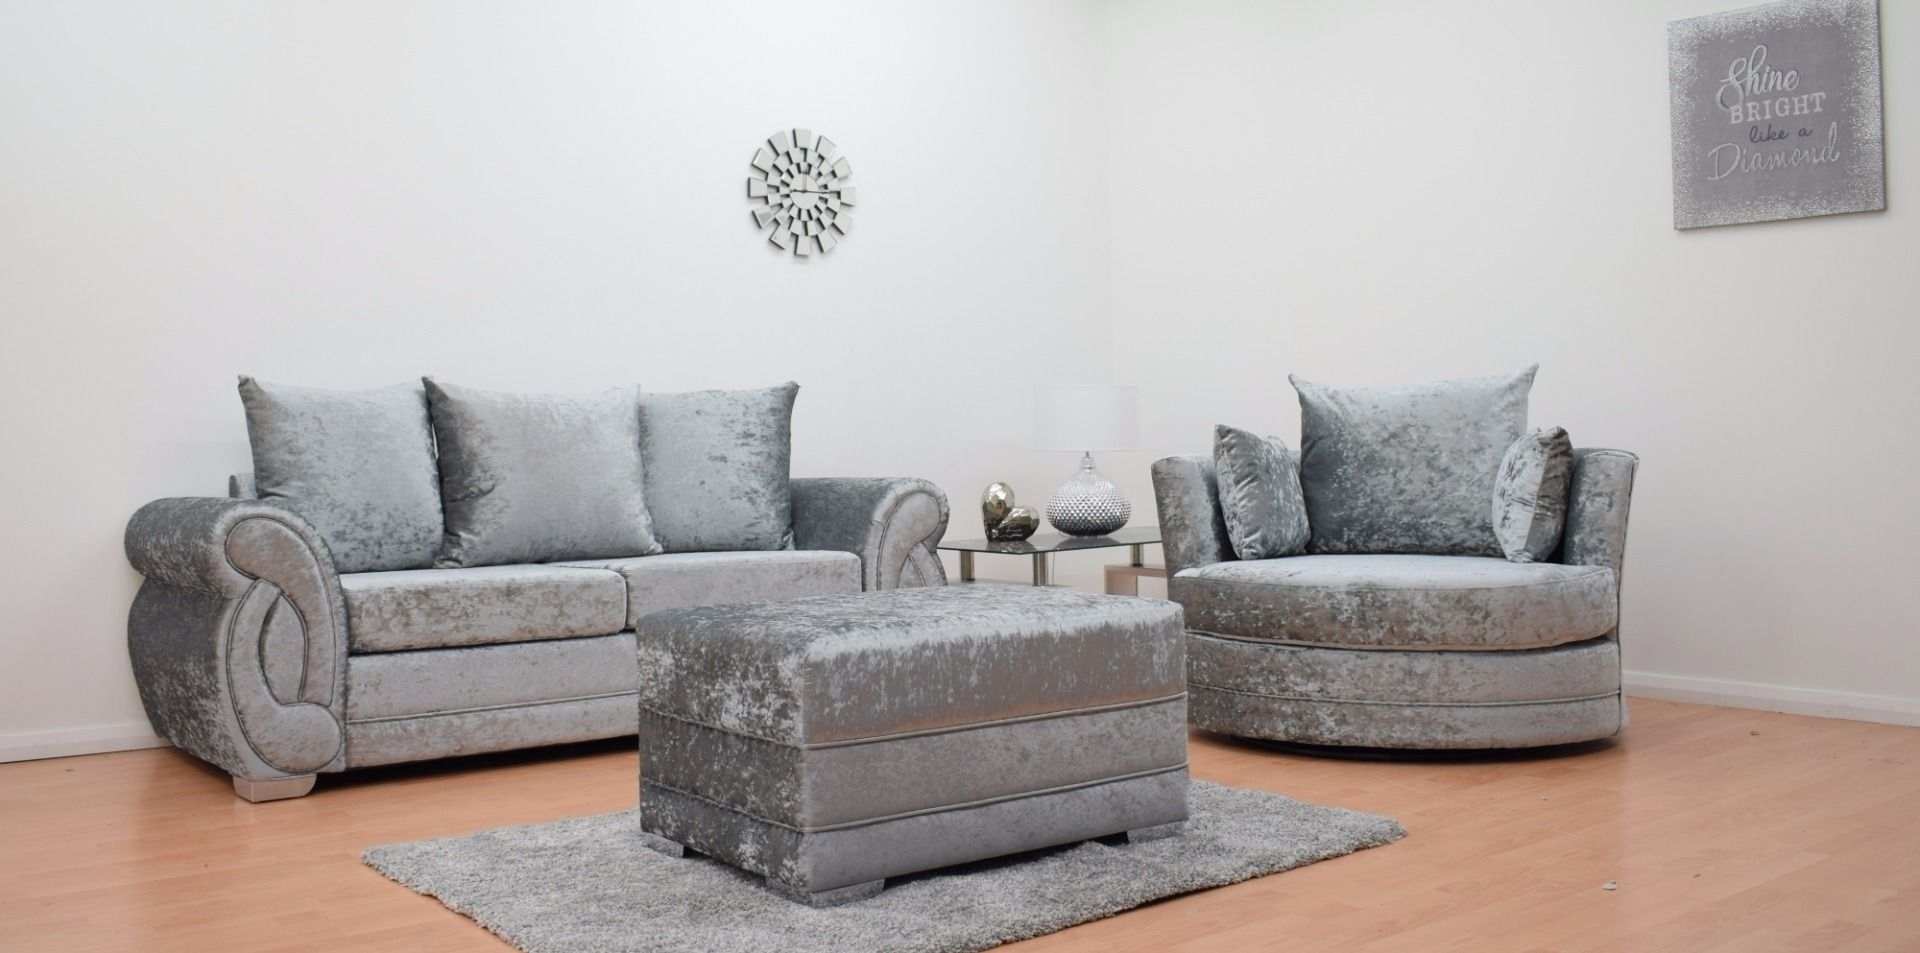 Furnish365 | Chloe 3 Seater Sofa + Cuddle Chair + Footstool - Silver within 3 Seater Sofas And Cuddle Chairs (Image 2 of 10)